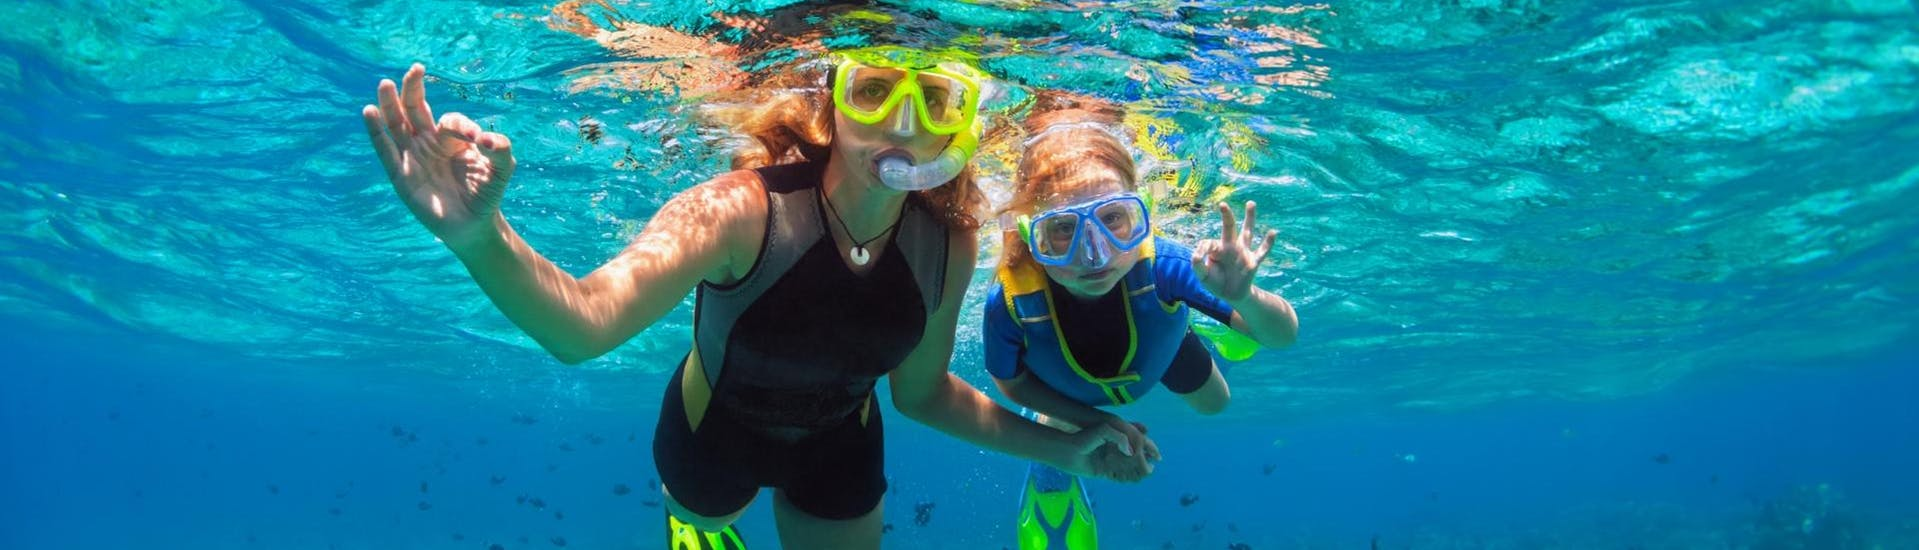 Mother and daughter snorkeling together and having fun underwater